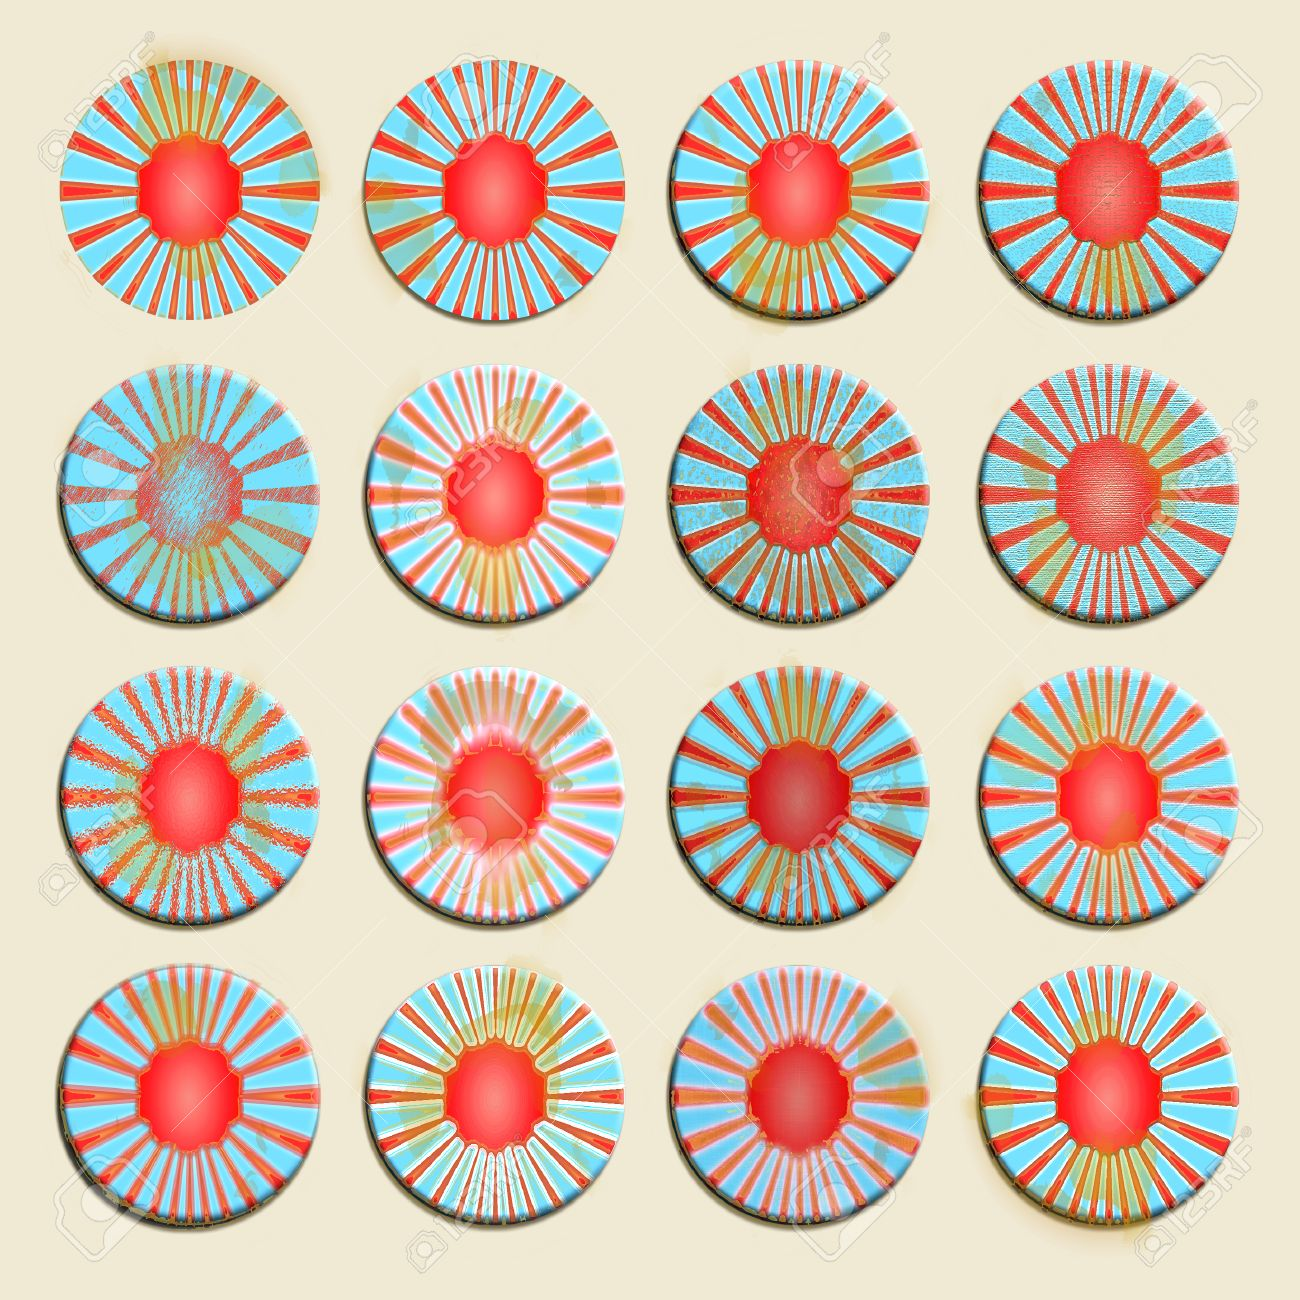 Vintage circular badges set in red blue and white Stock Photo - 24380705